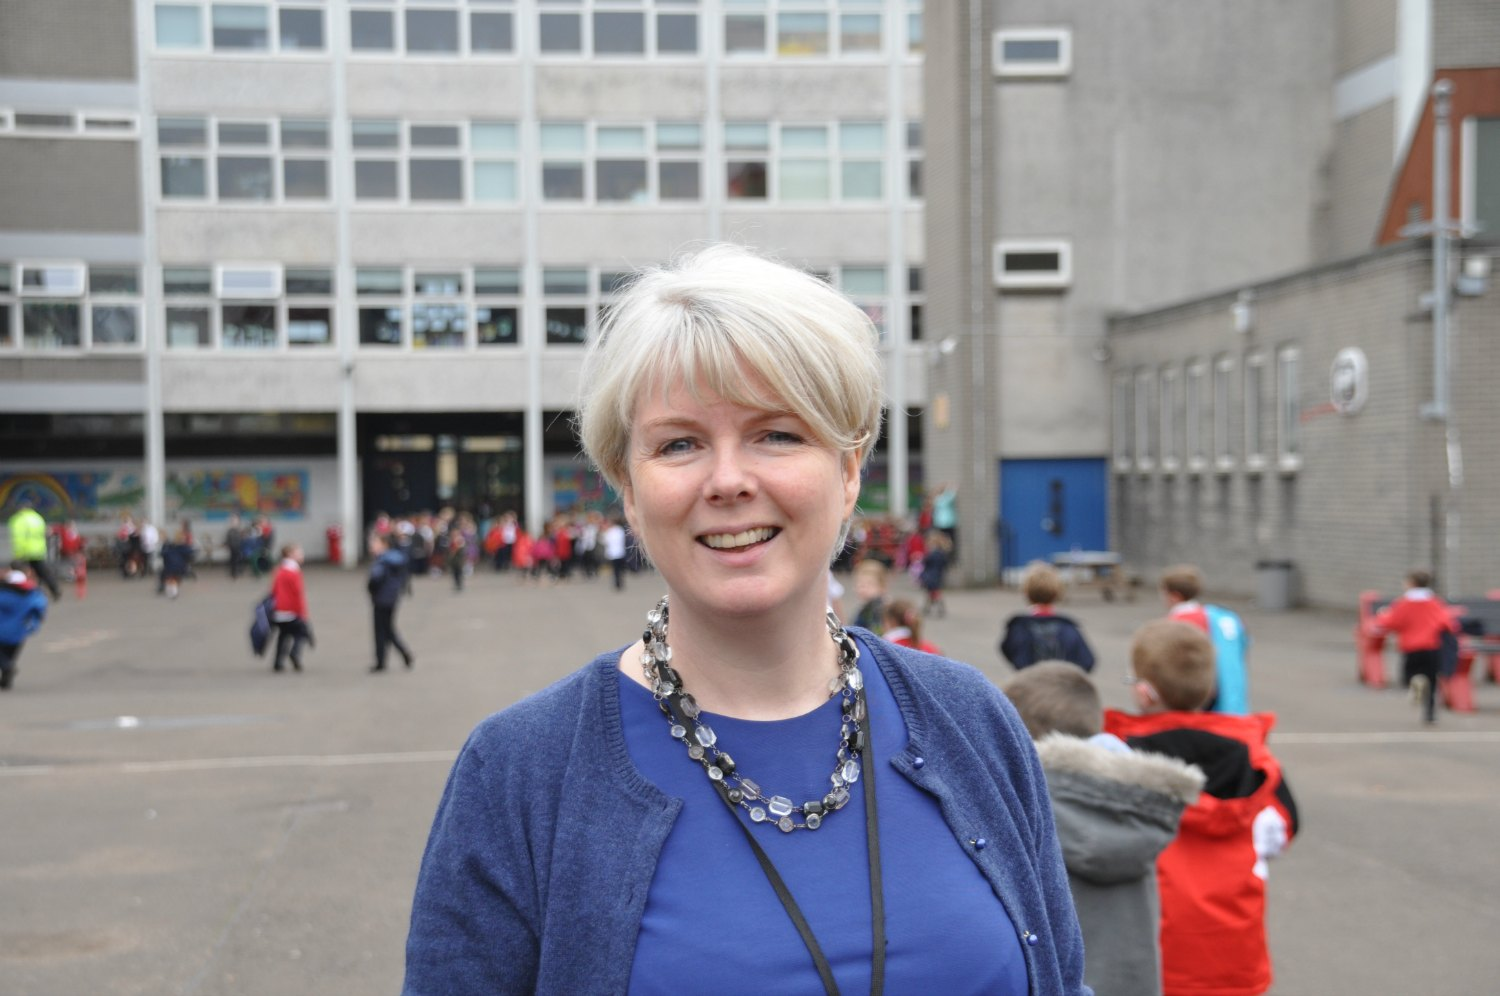 Donalda McComb, head teacher of the Glasgow Gaelic School, grew up on South Uist in the Outer Hebrides, in a Gaelic-speaking community. Photo: Meg Pier